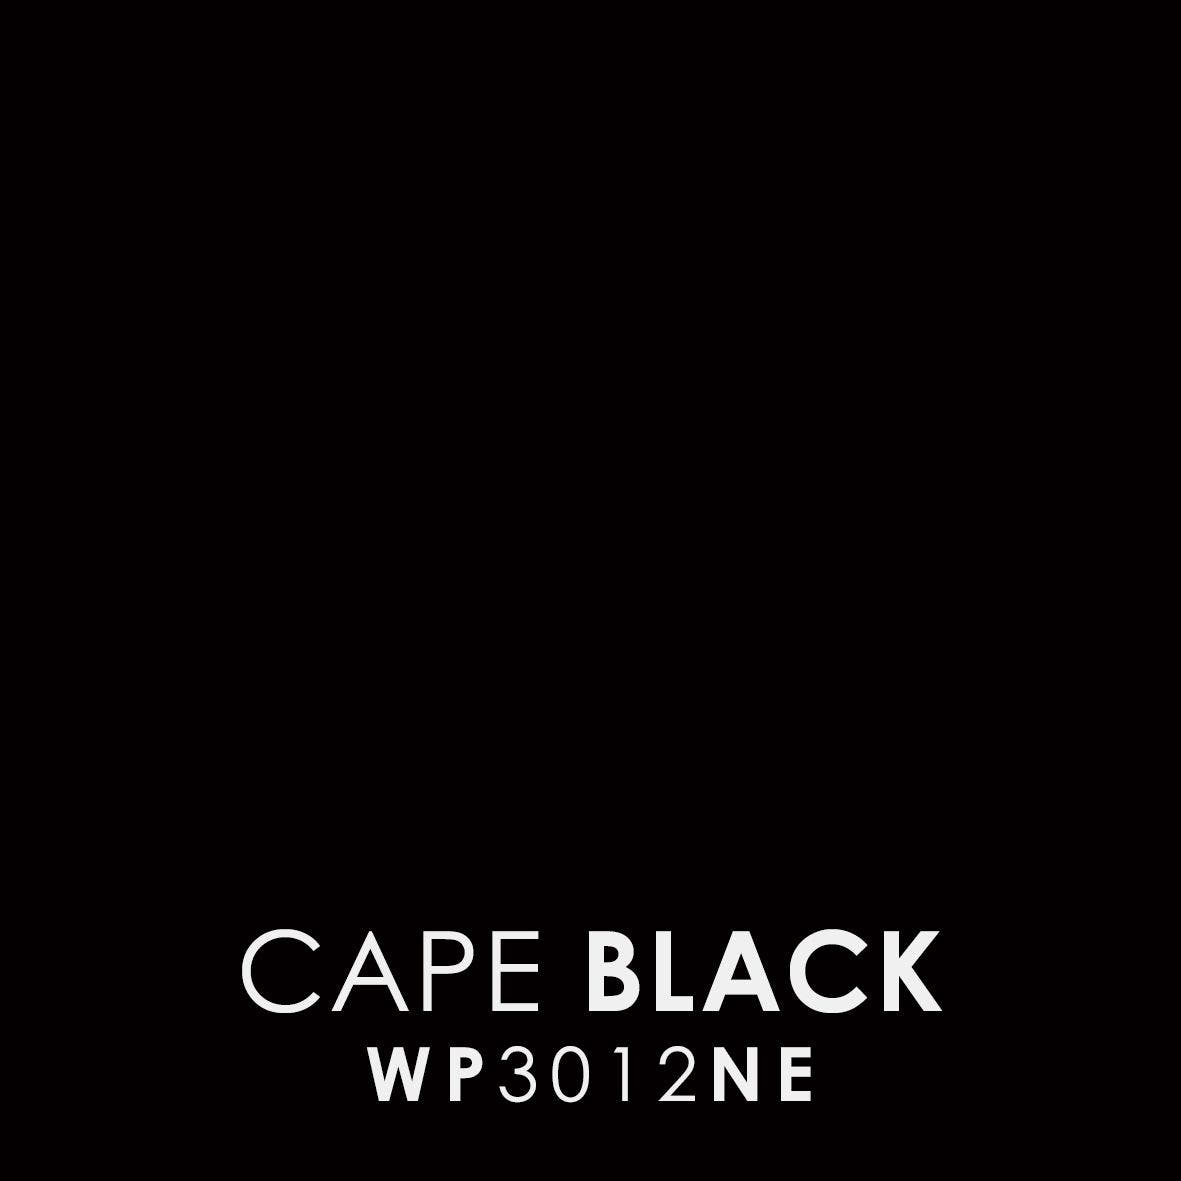 Wahl Professional Haircutting cape 3012 Black